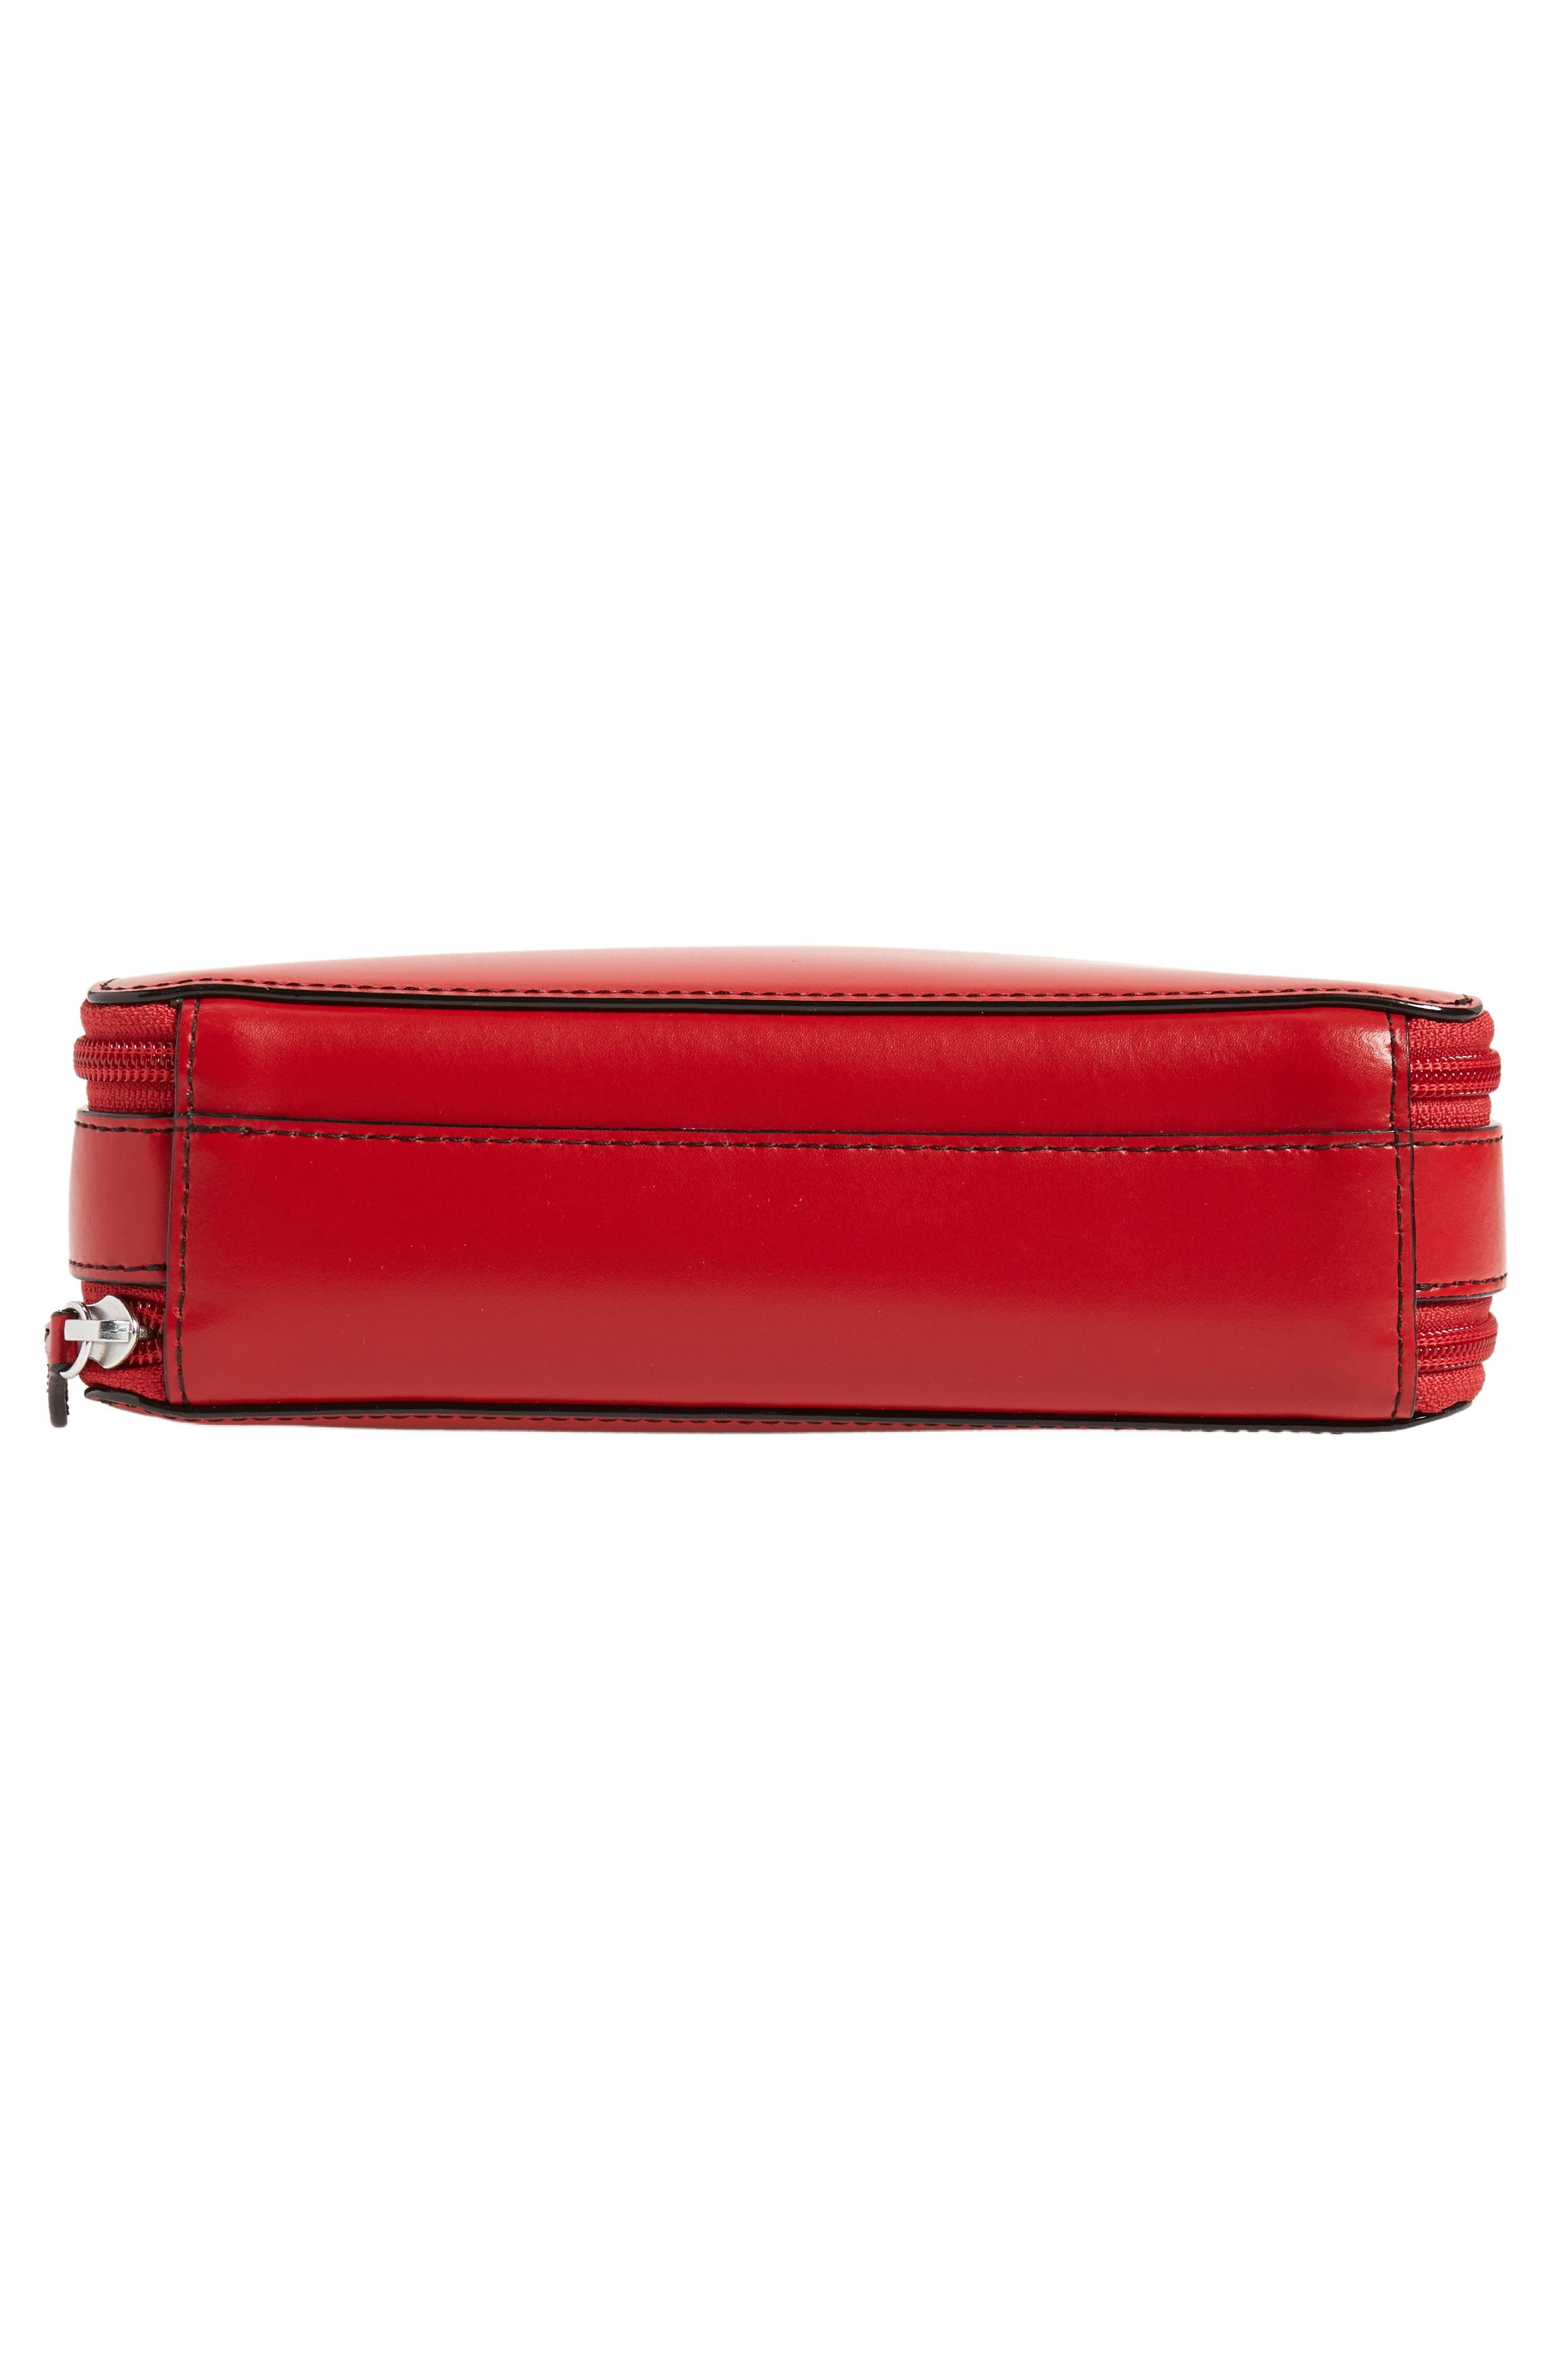 Downtown Sally RFID Zip-Around Leather Crossbody Bag,                             Alternate thumbnail 6, color,                             RED